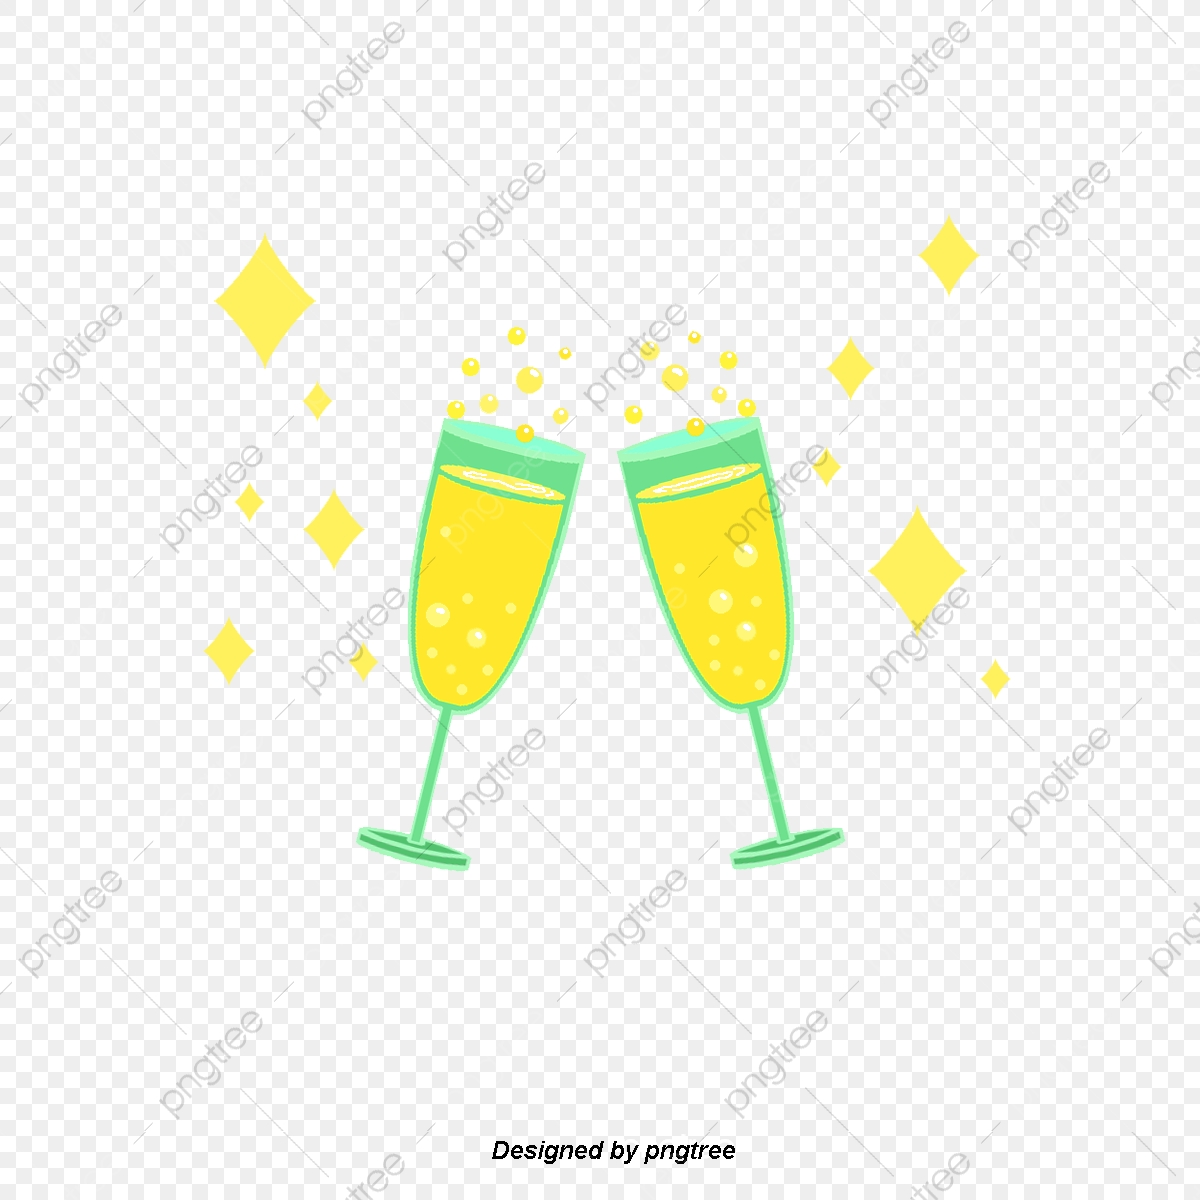 Wine wineglass spray png. Champagne clipart file